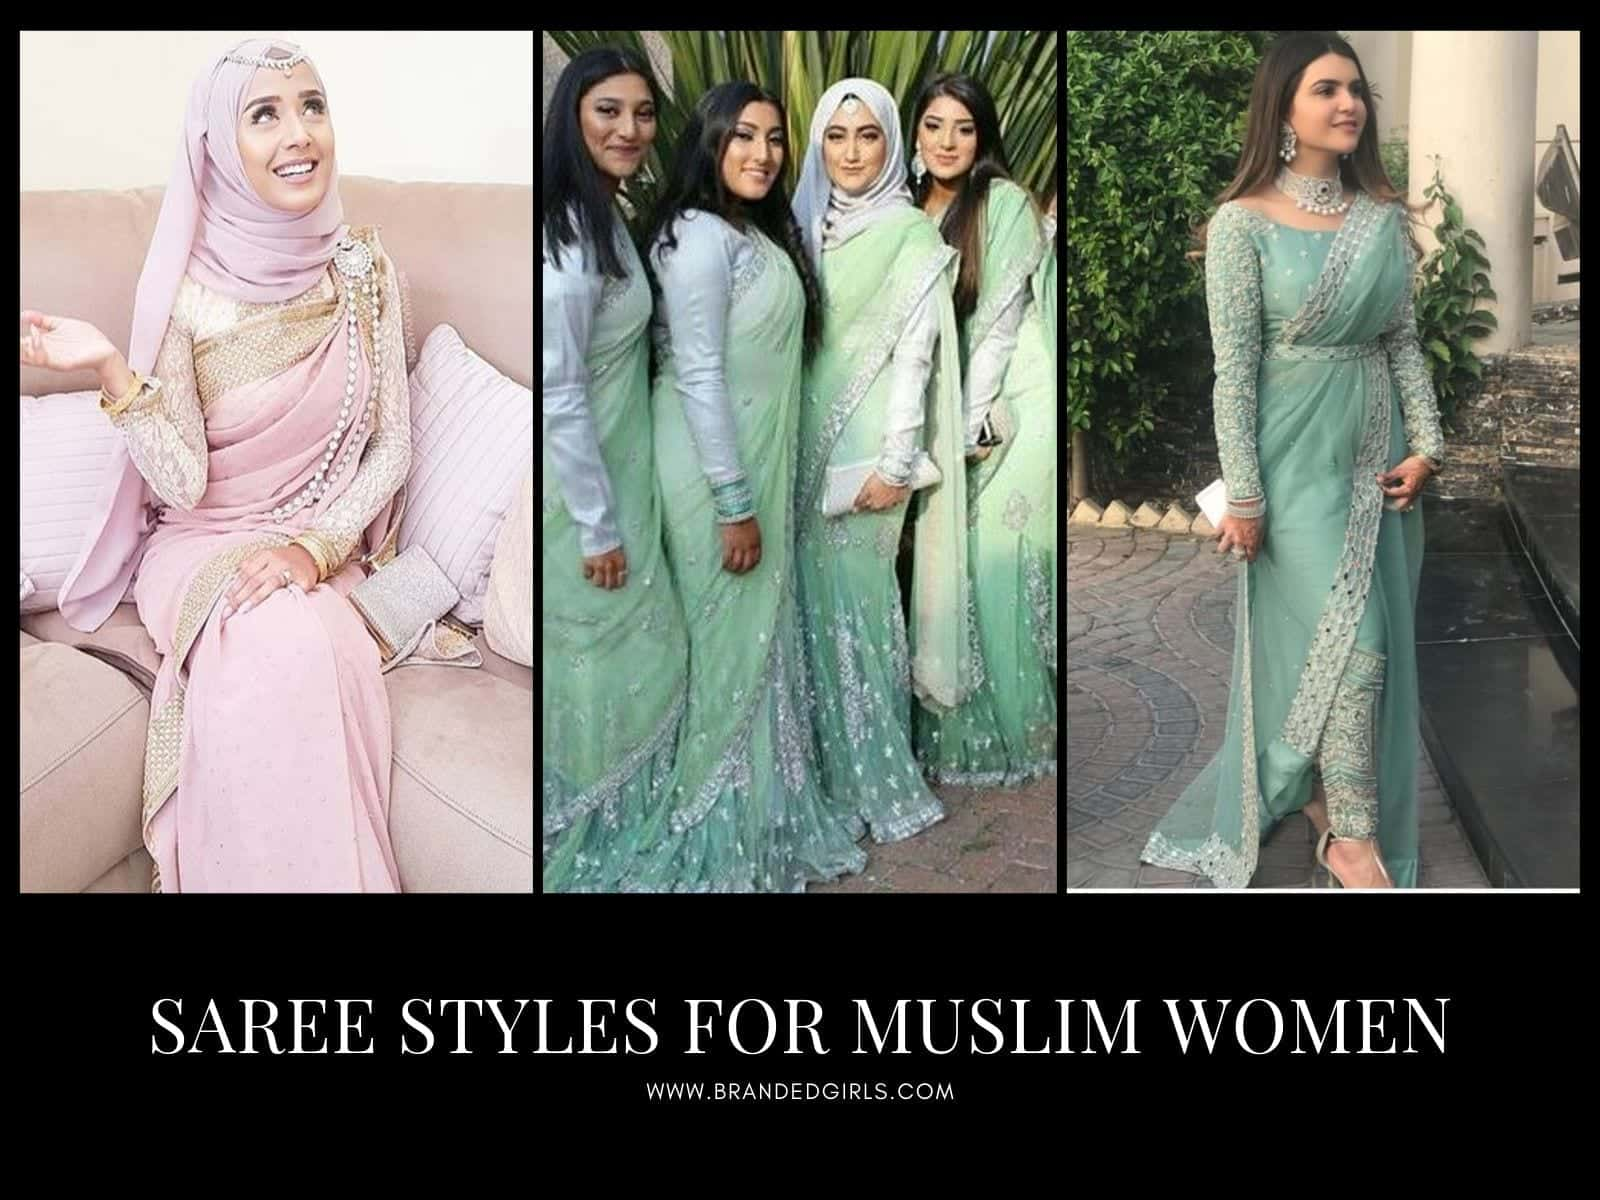 Saree-Styles-for-Muslim-Women 15 Modest and Chic Saree Styles for Muslim Women